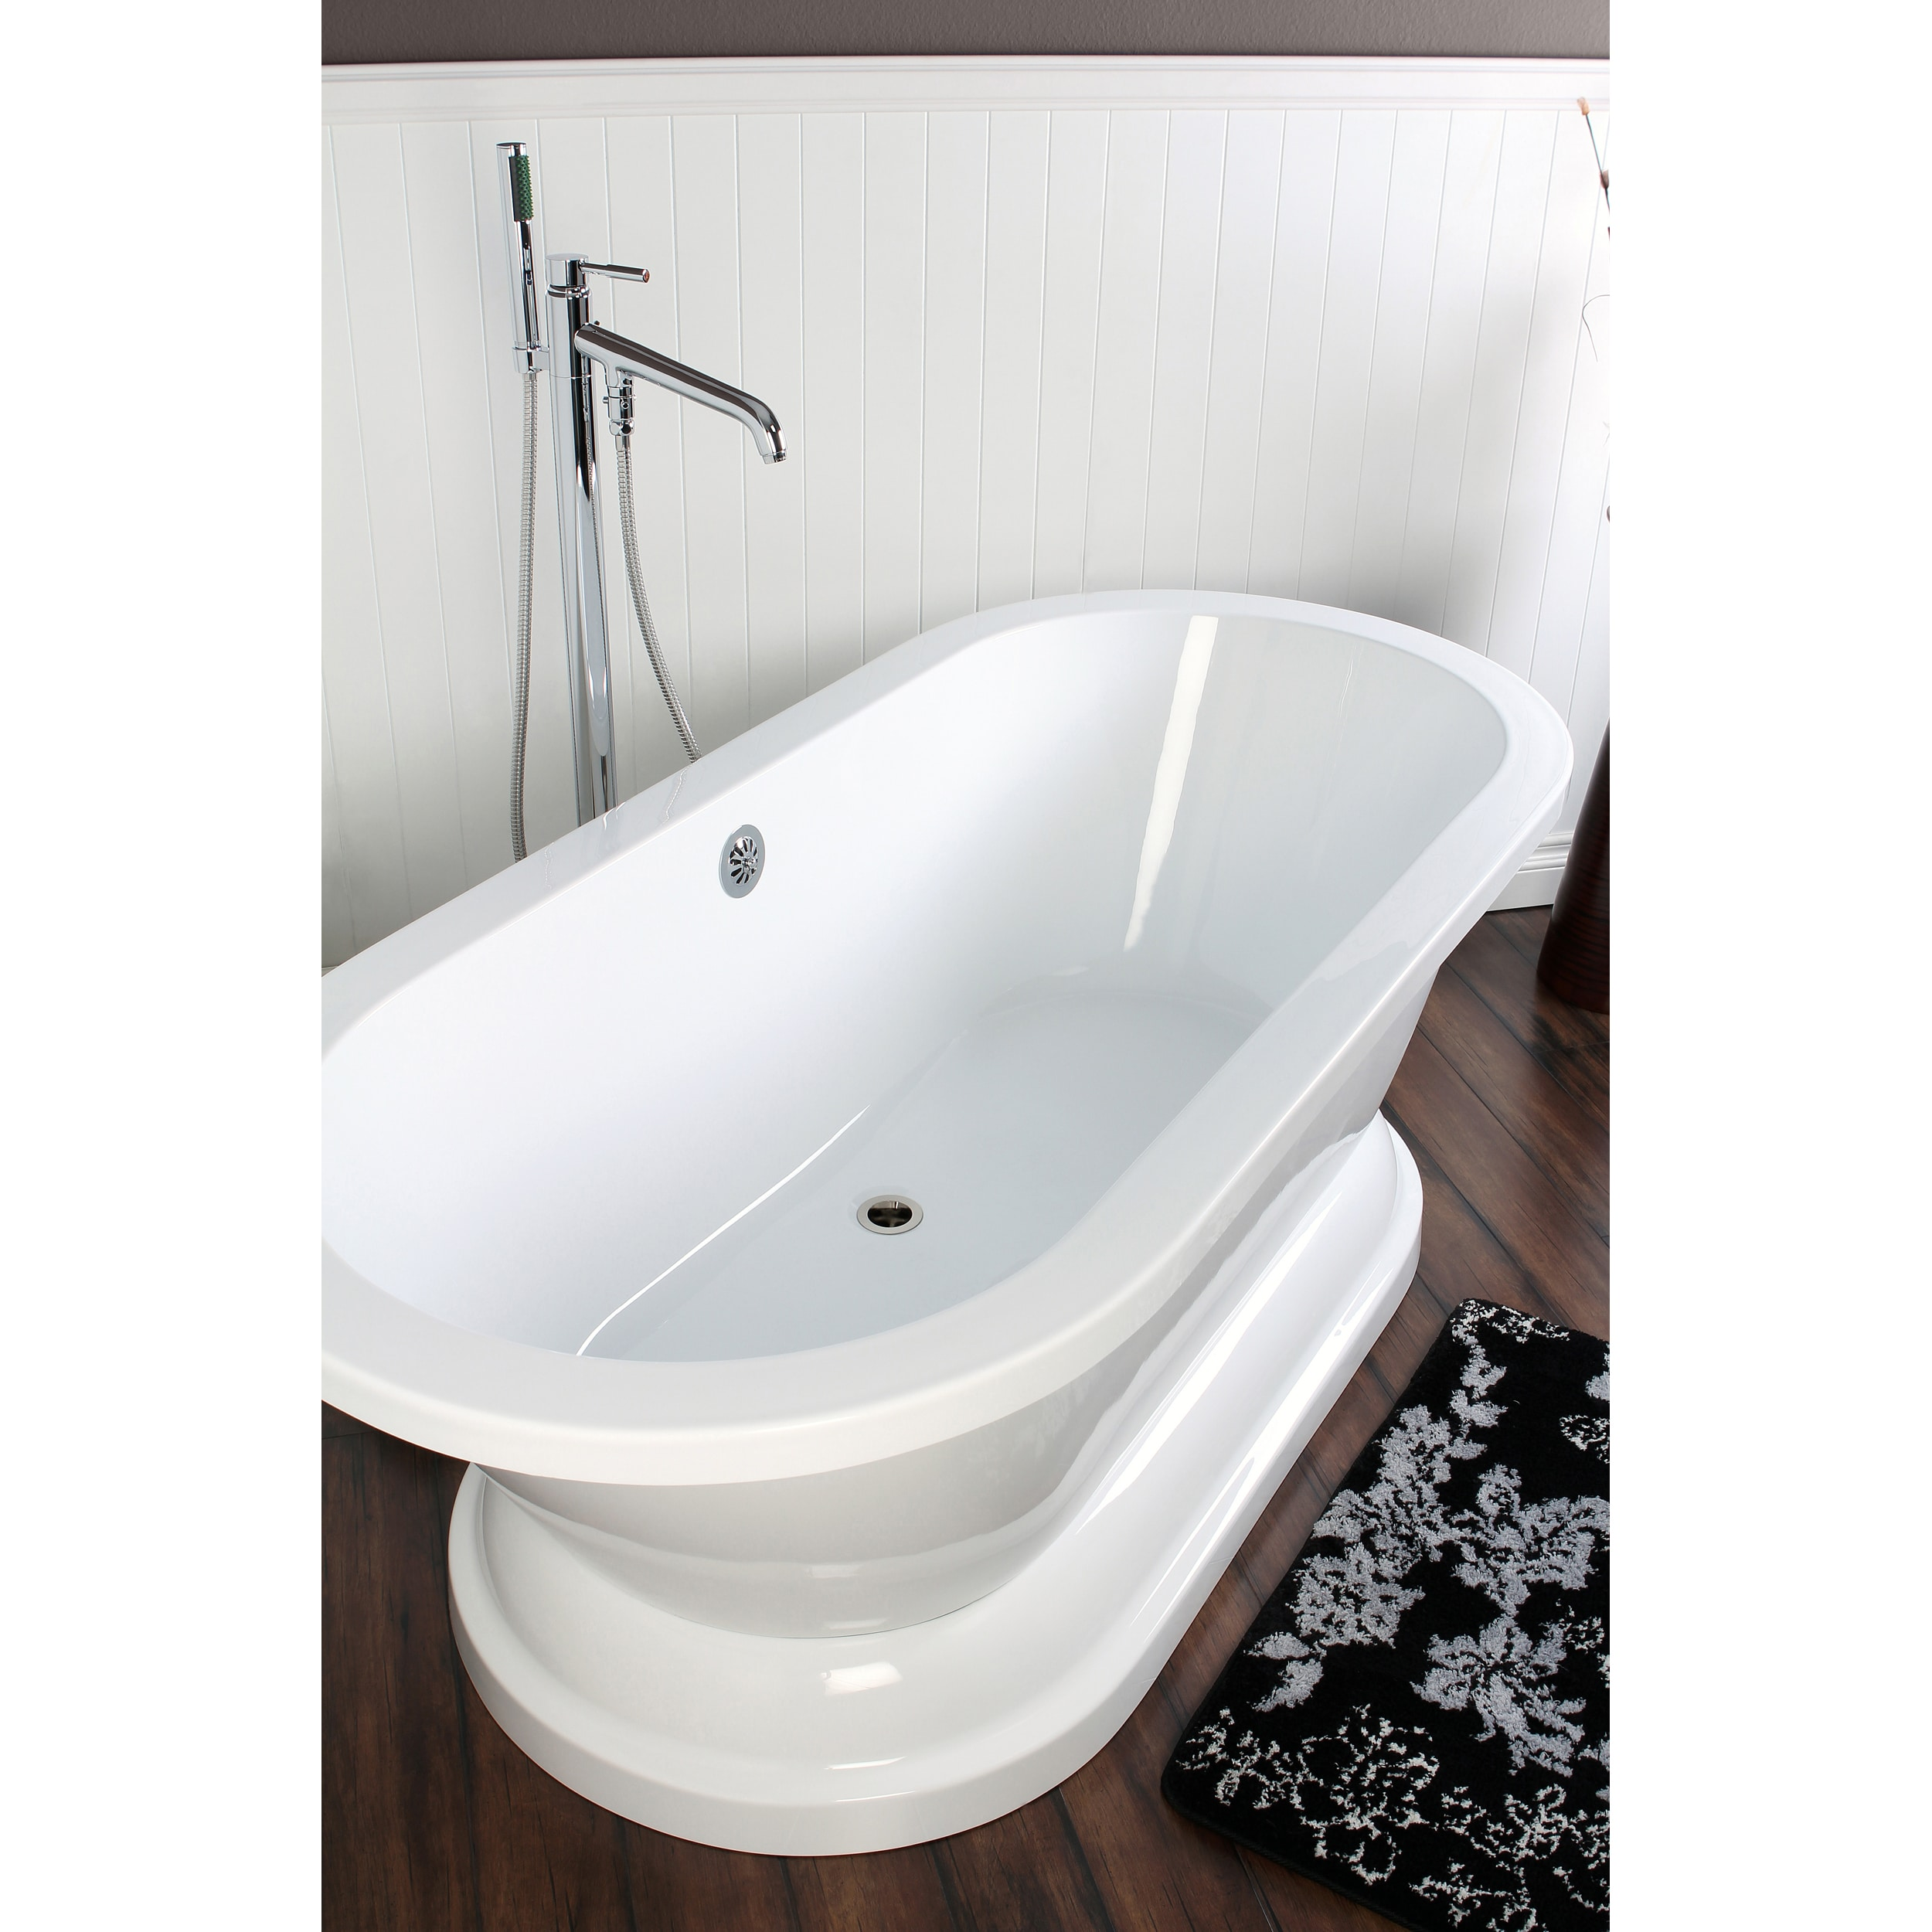 Shop Contemporary Double-ended 67-inch Acrylic Pedestal Bathtub ...